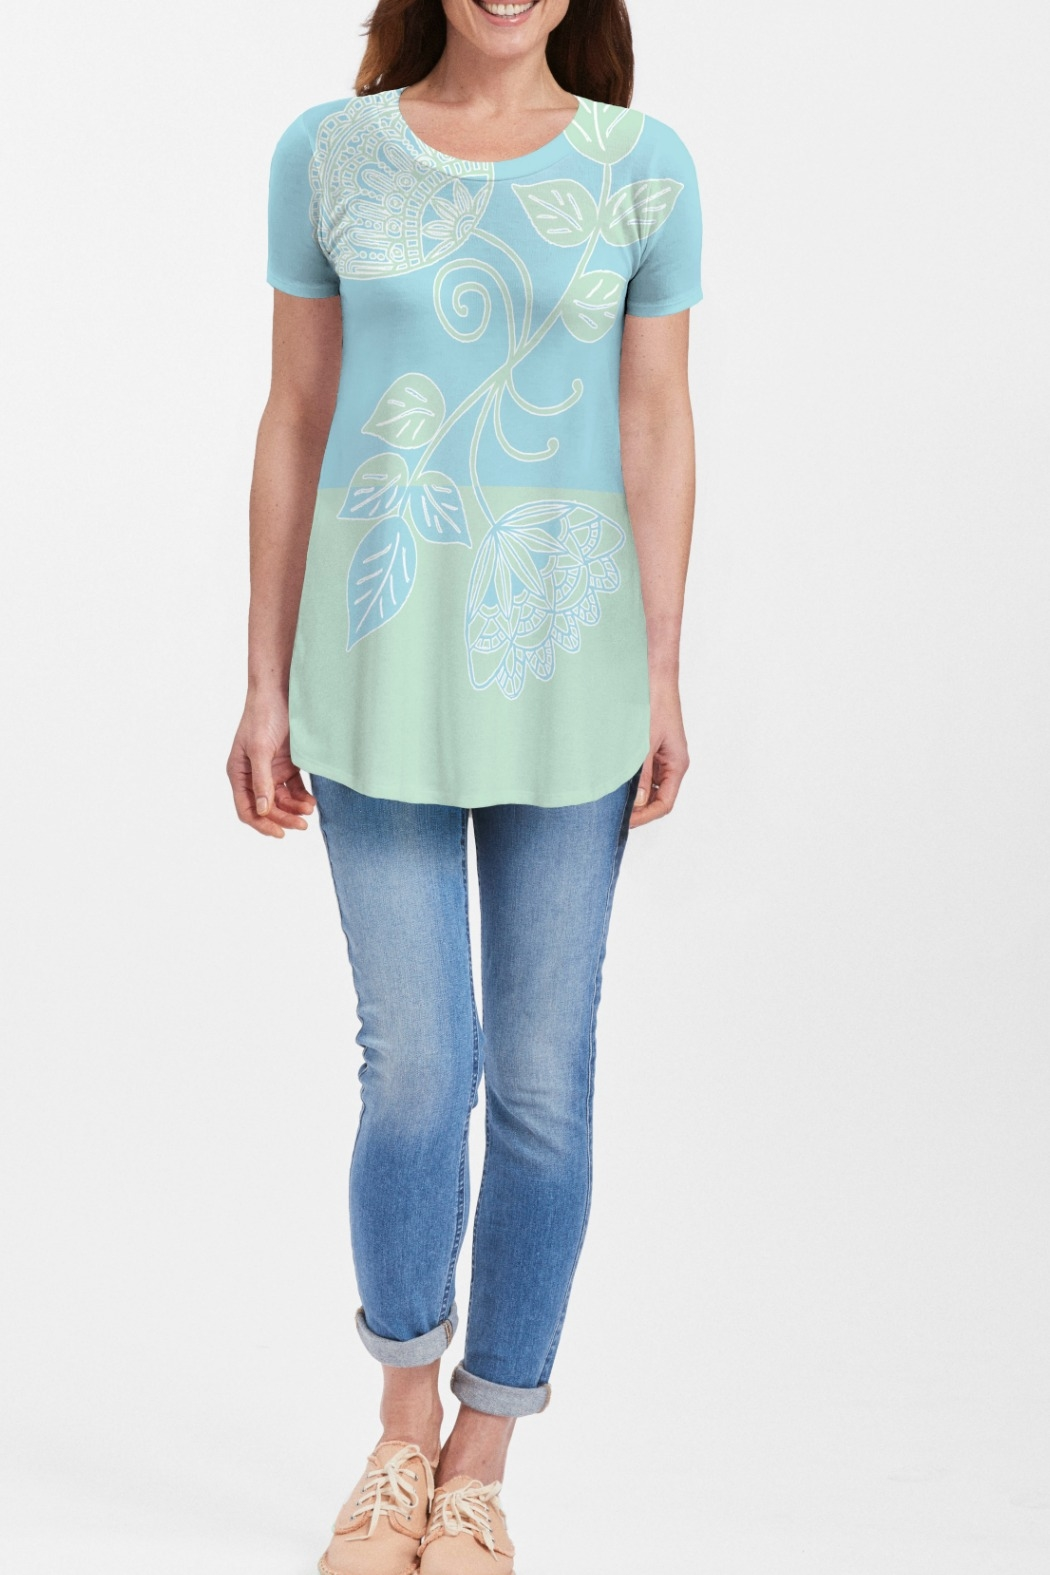 Whimsy Rose Stamped Floral Aqua S/S Butterknit Tunic - Main Image